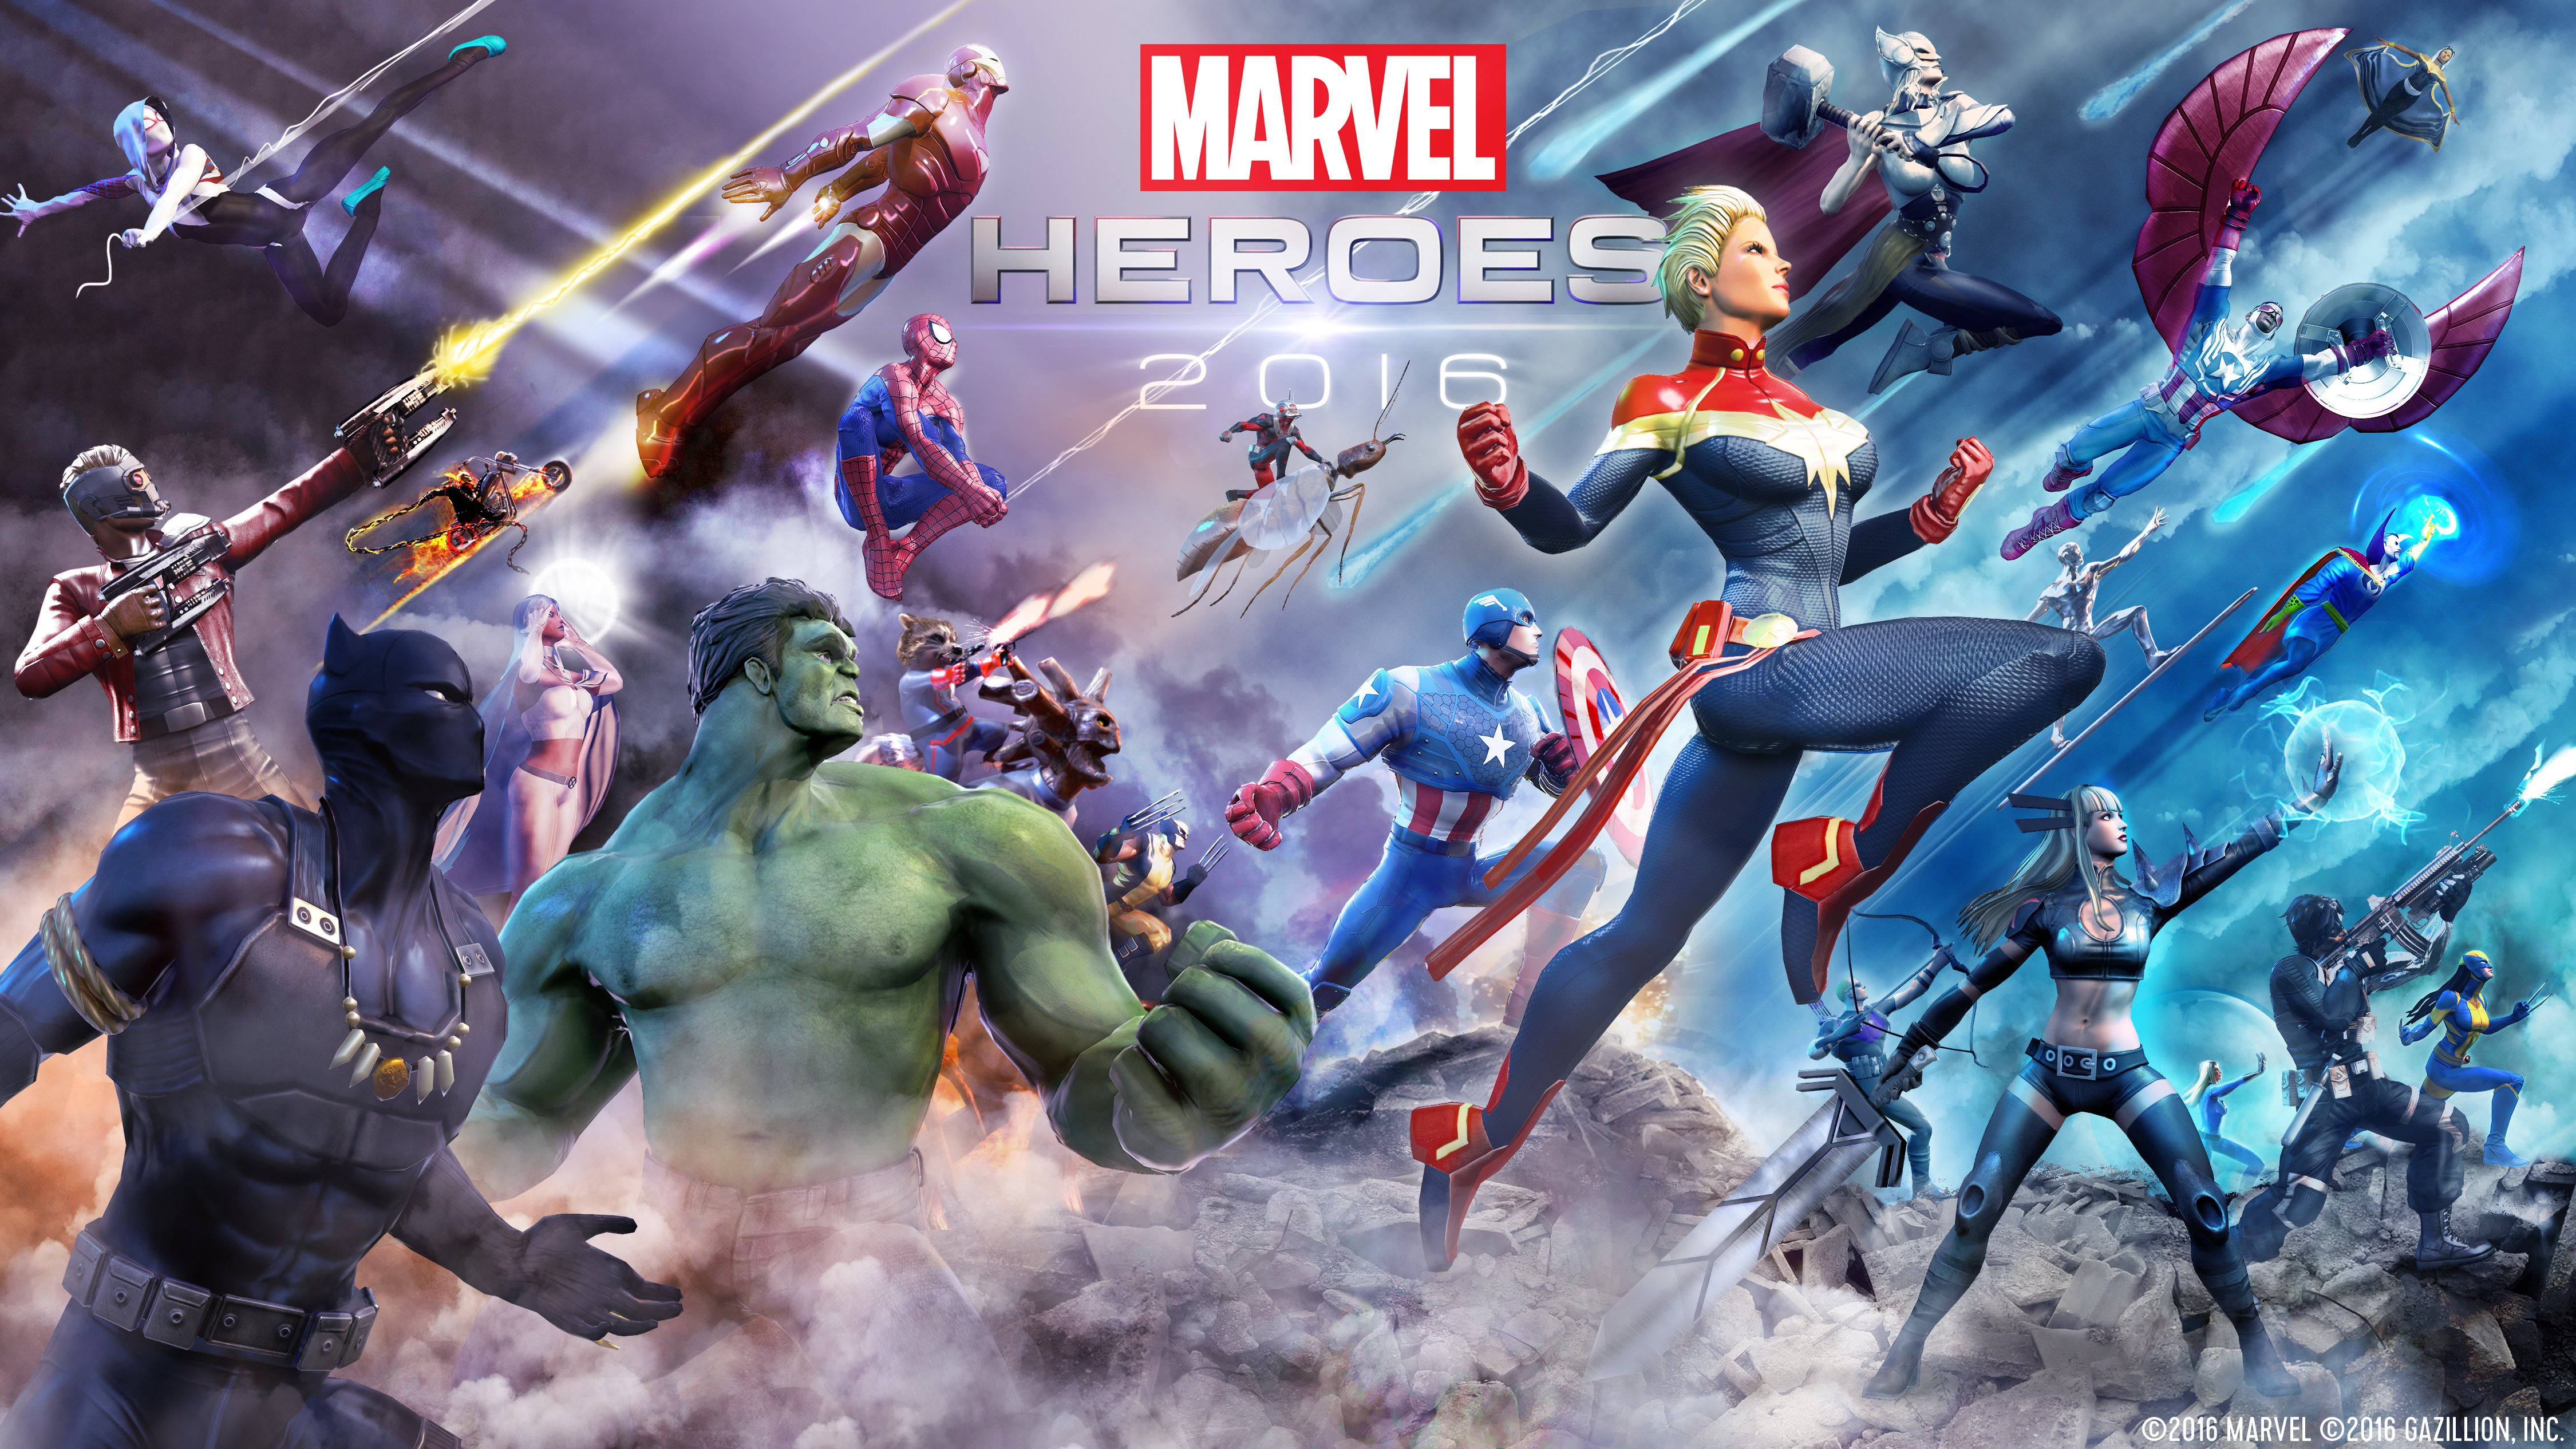 CIVIL WAR Comes To MARVEL HEROES 2016 Game